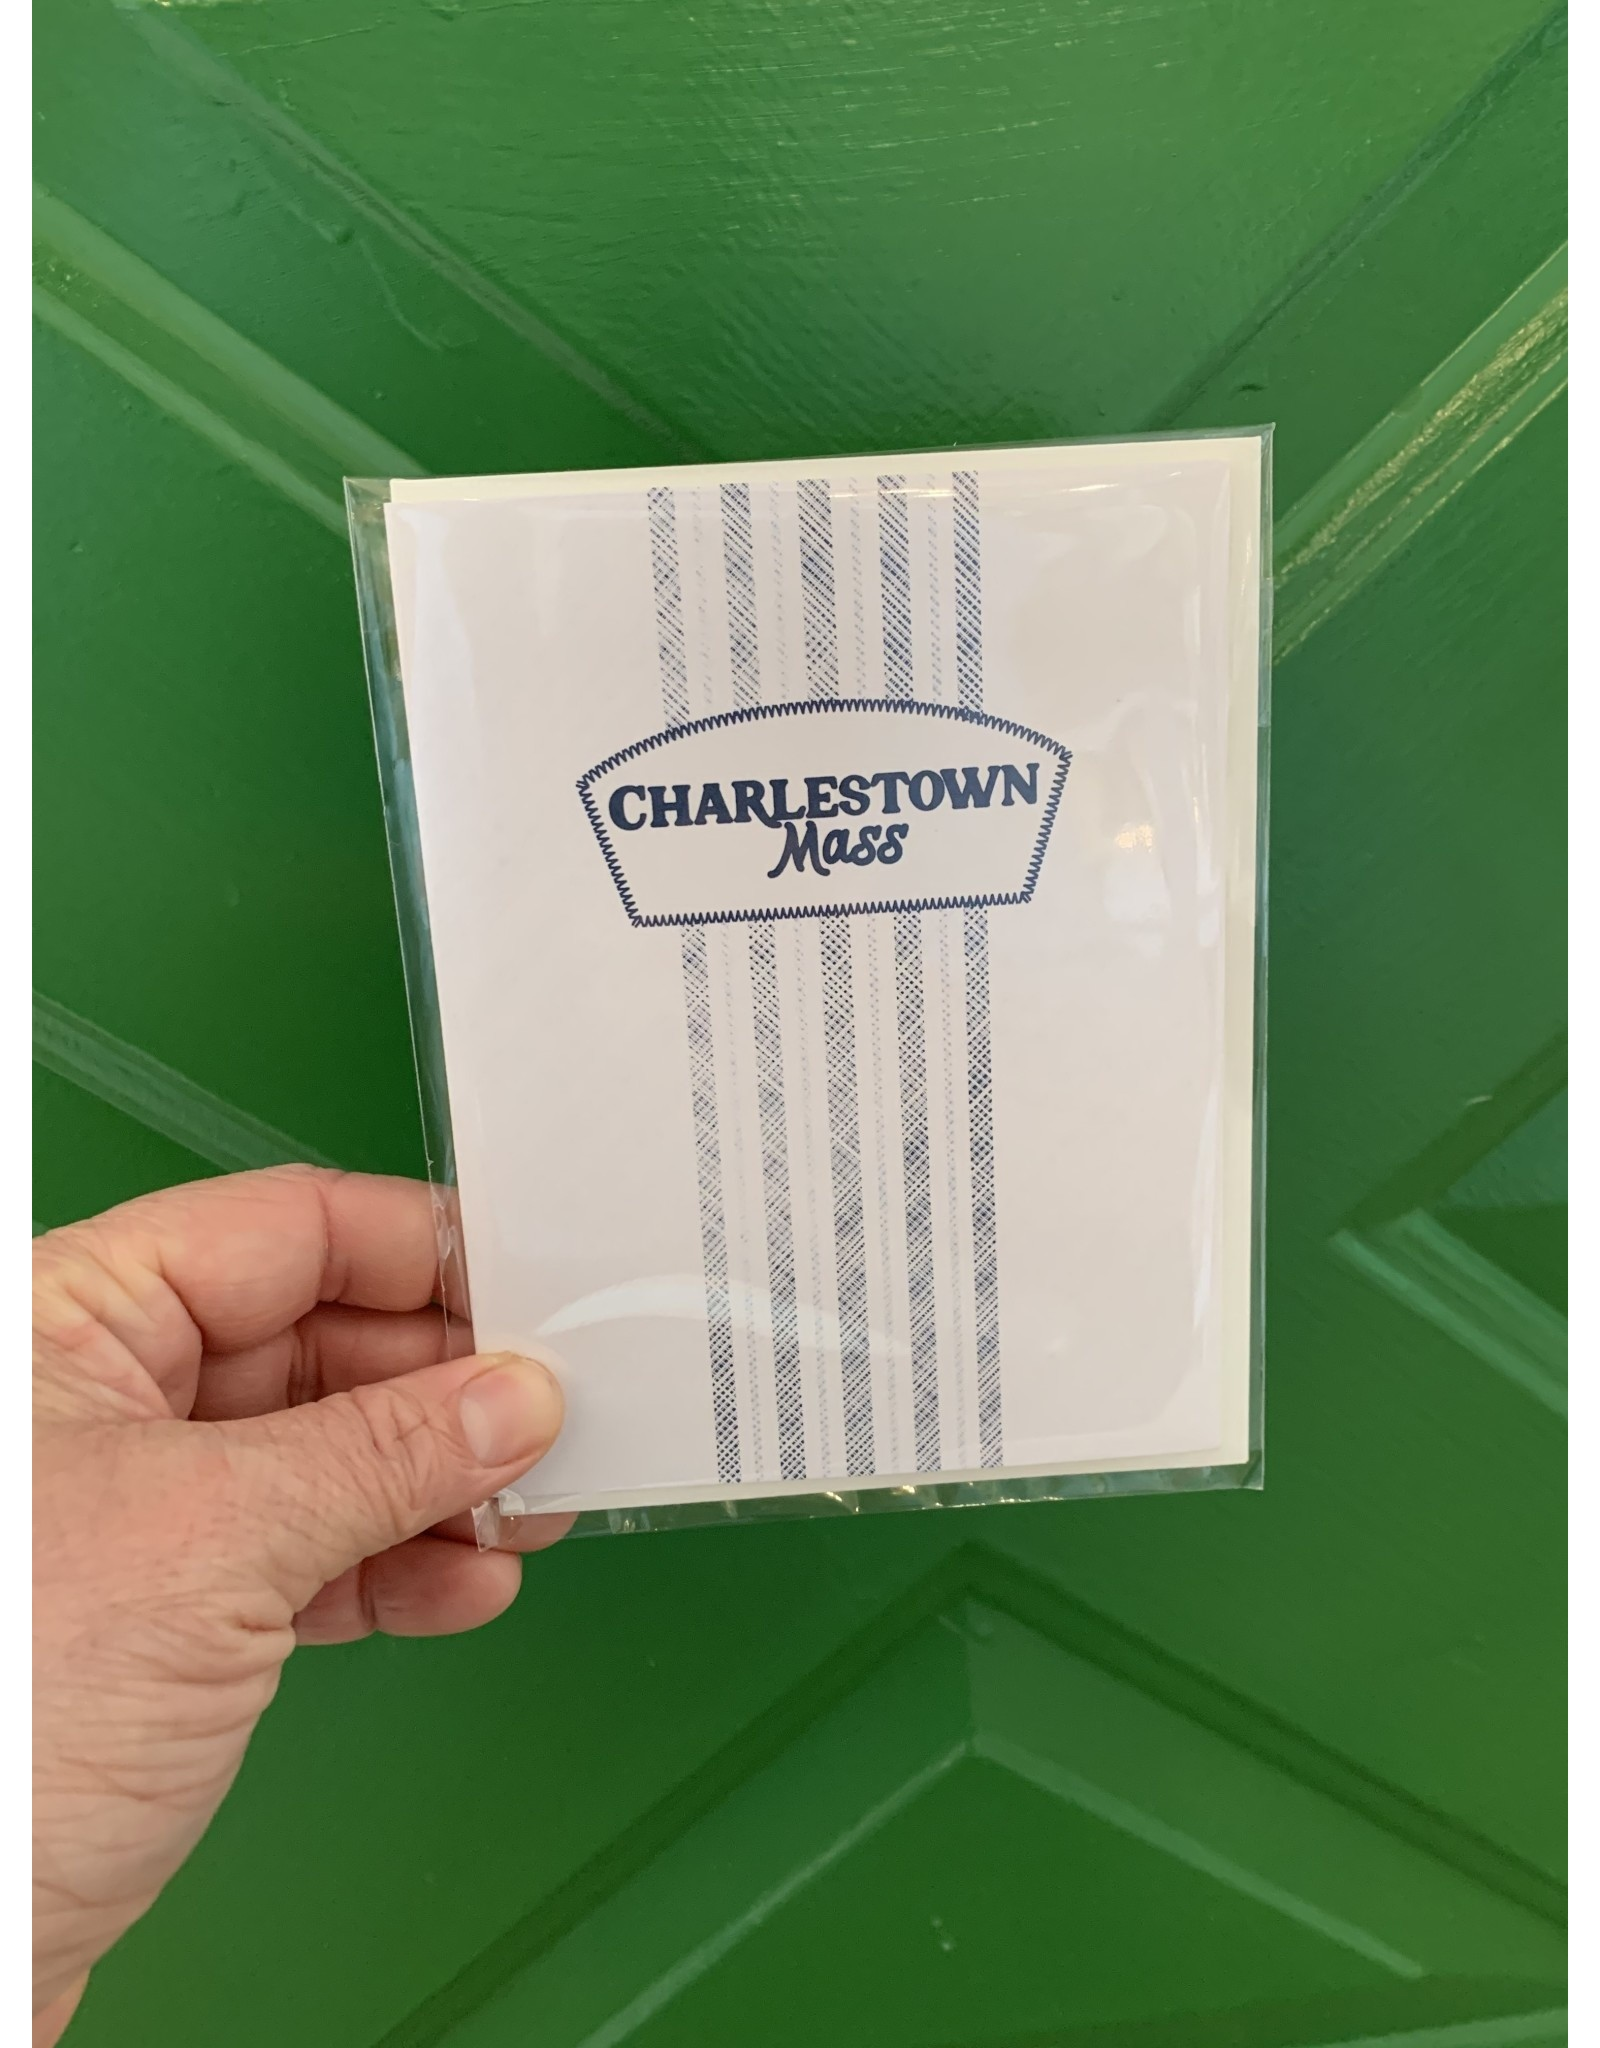 Casey Circle Charlestown Patch Card